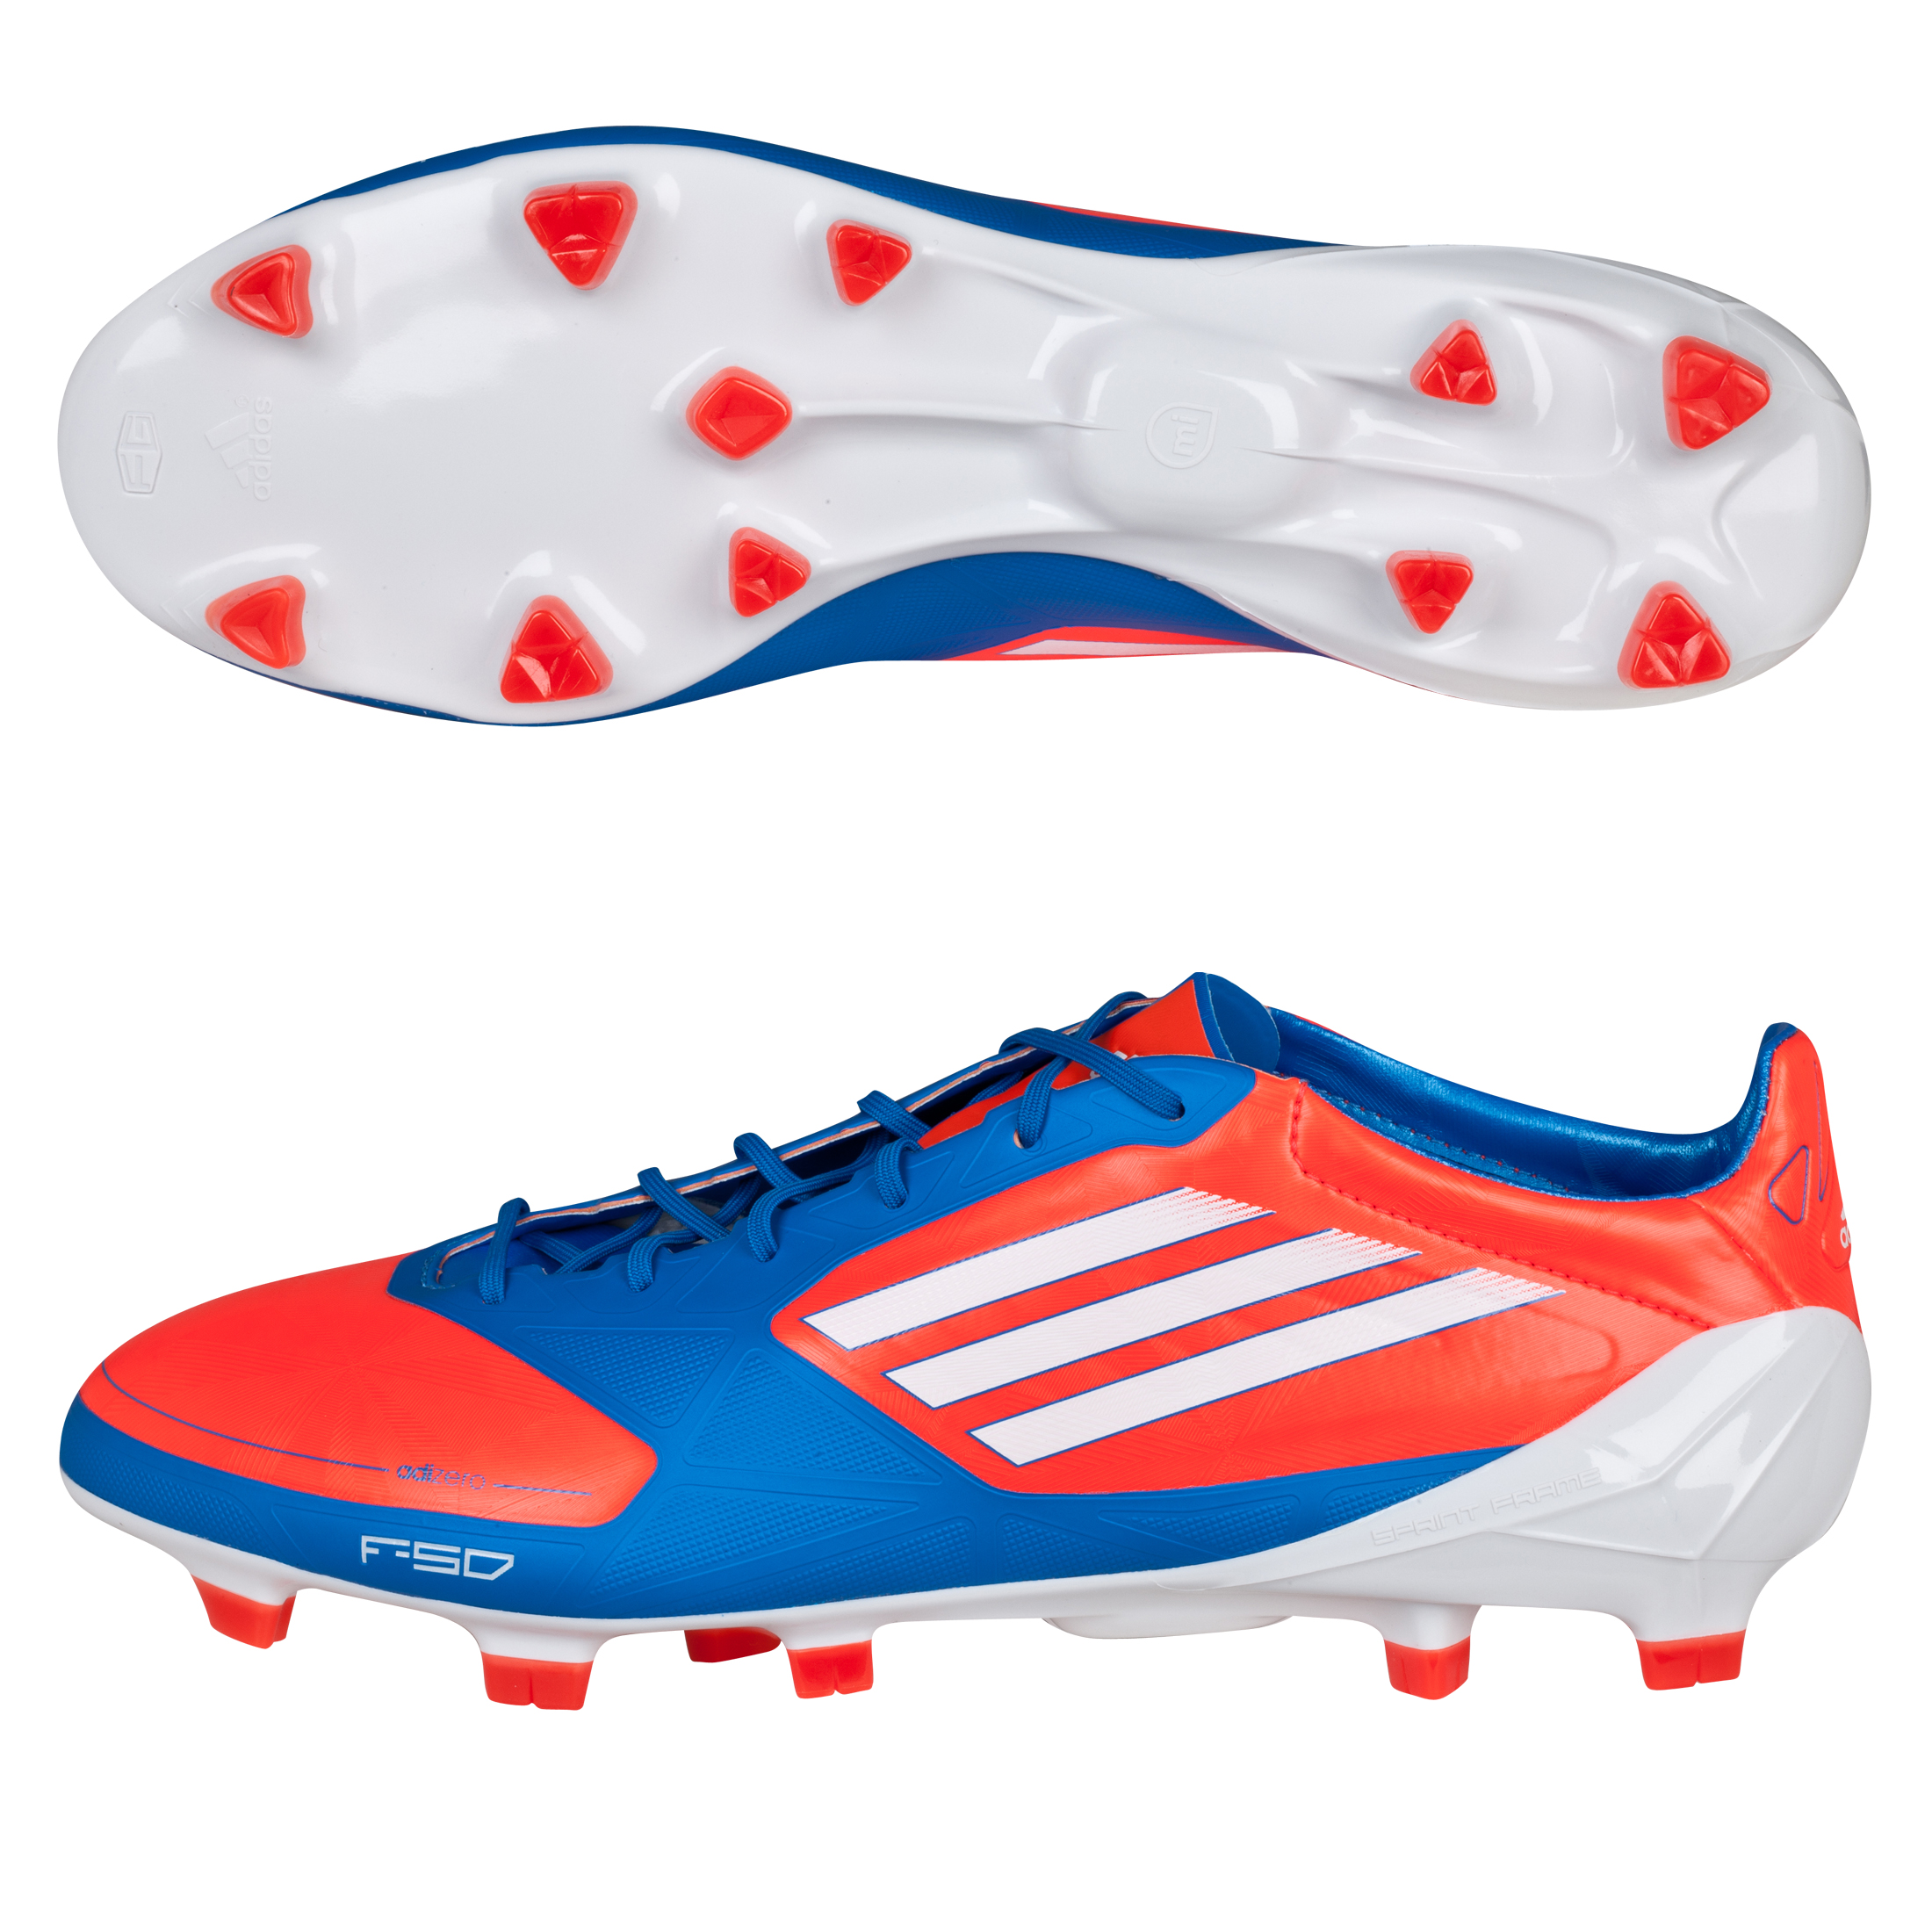 Adidas F50 Adizero TRX Firm Ground Synthetic Football Boots - Infrared/White/Bright Blue